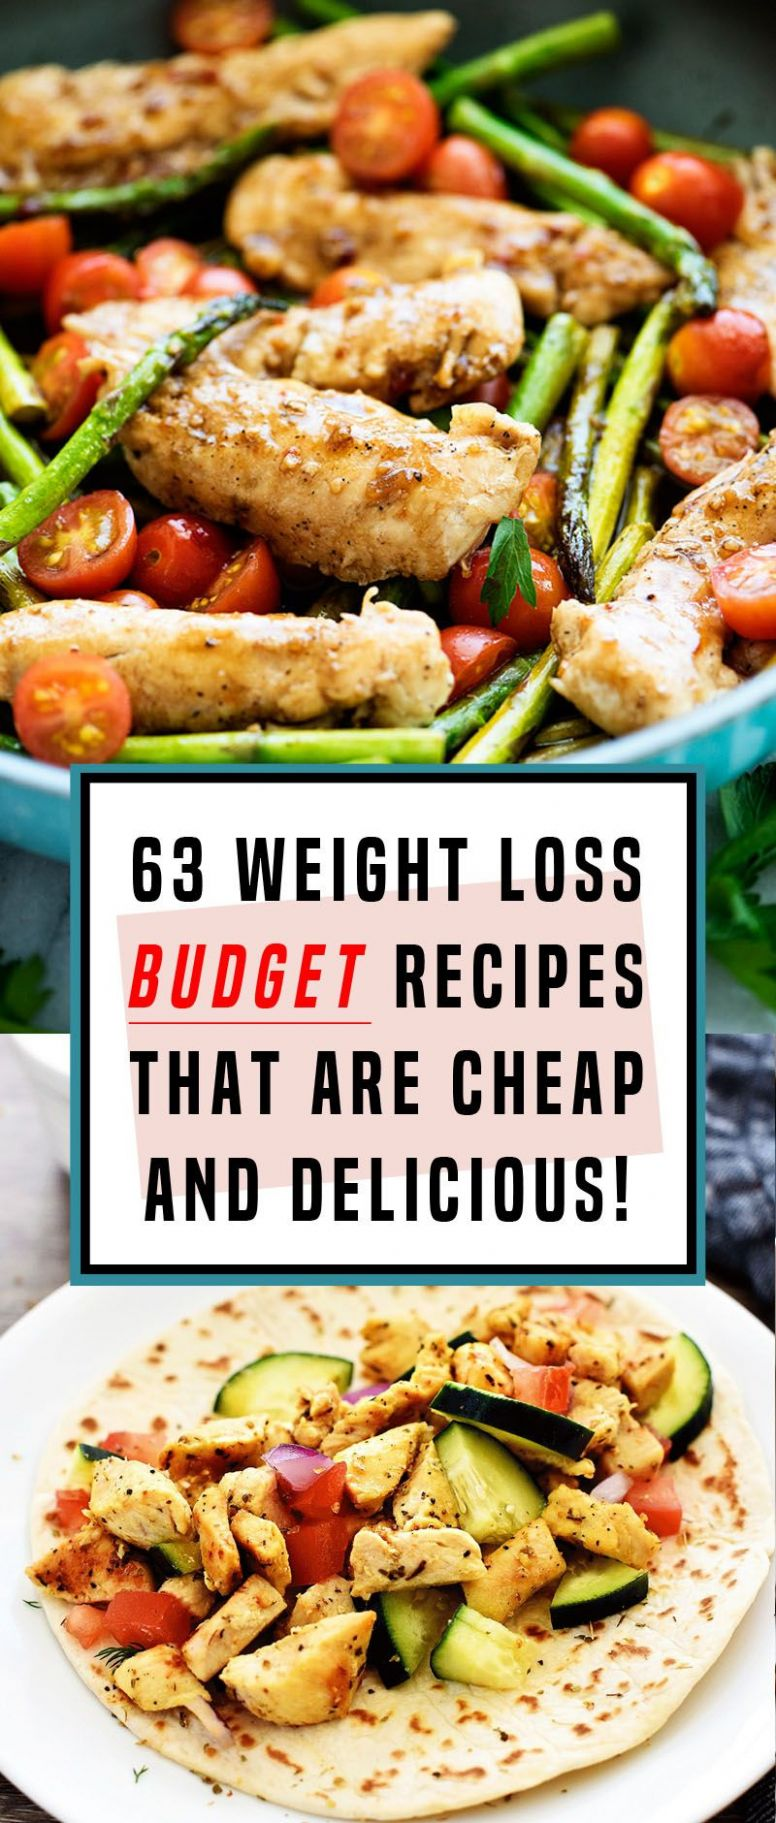 Pin on Health - Healthy Recipes For Weight Loss On A Budget